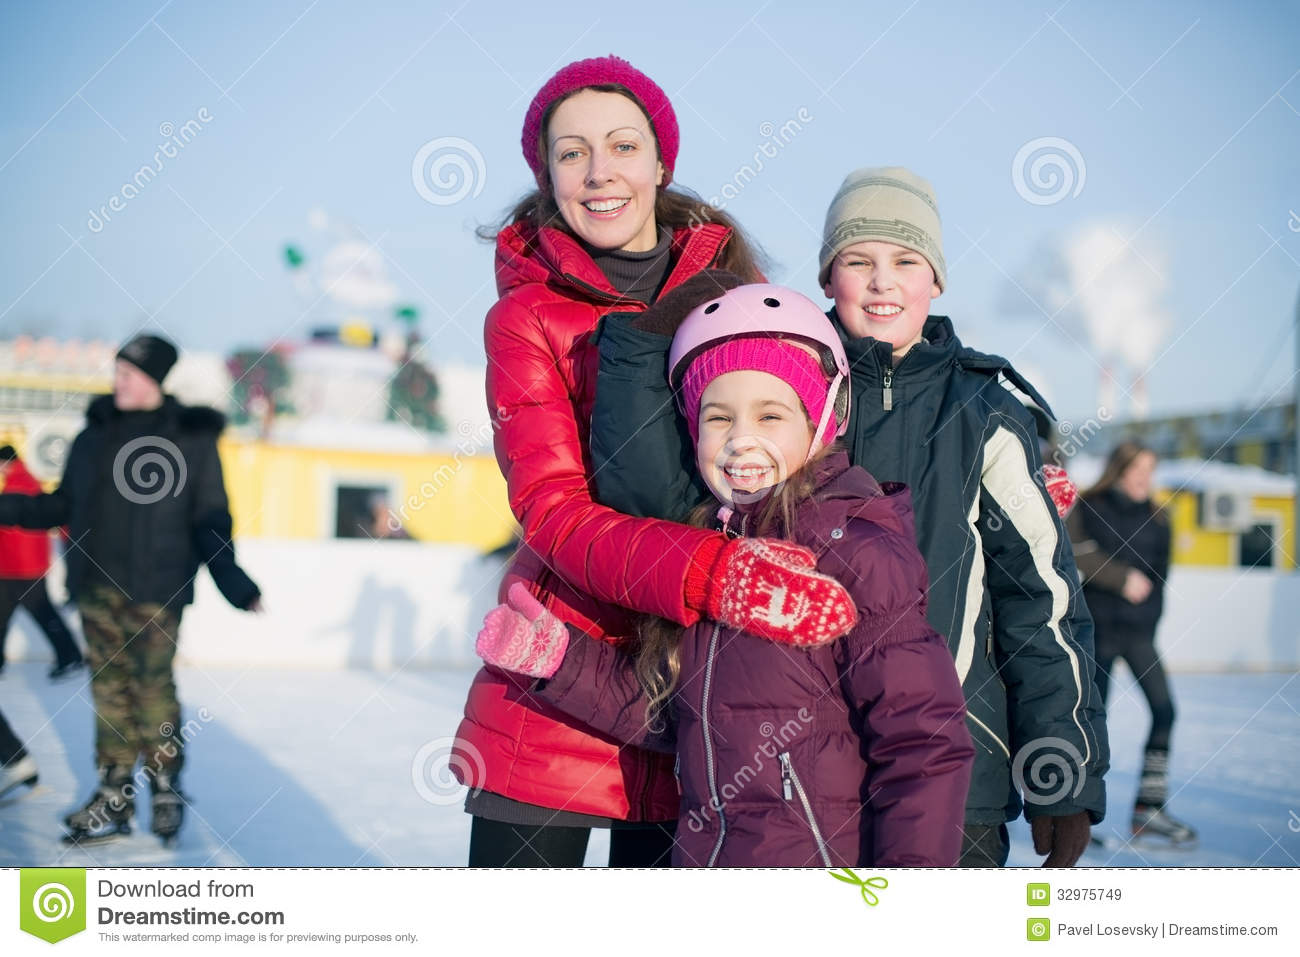 A mother with two children standing on the outdoor rink